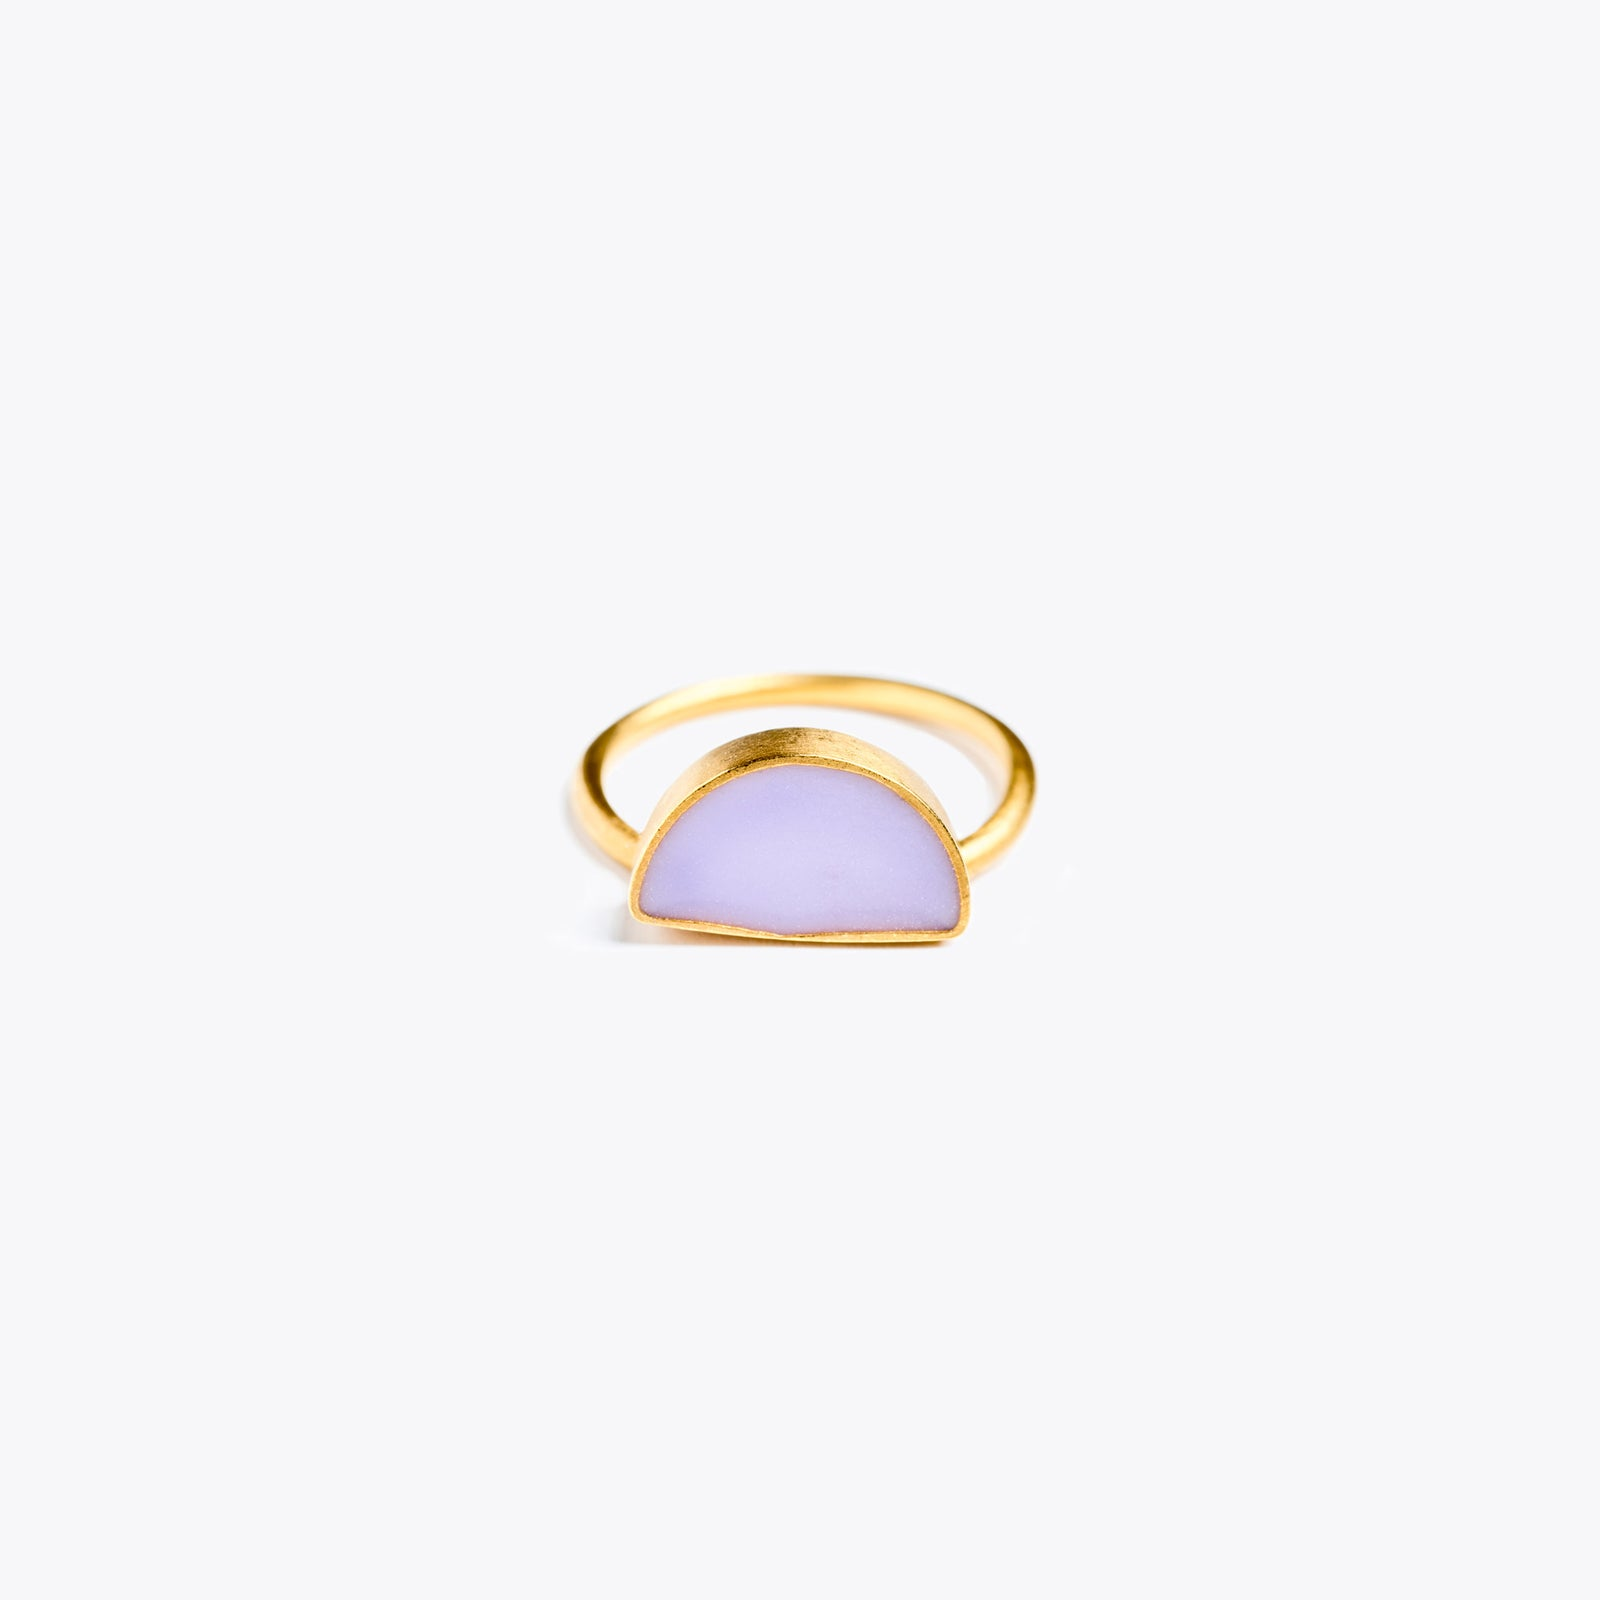 Wanderlust Life Ethically Handmade jewellery made in the UK. Minimalist gold and fine cord jewellery. sunburst enamel ring, lilac